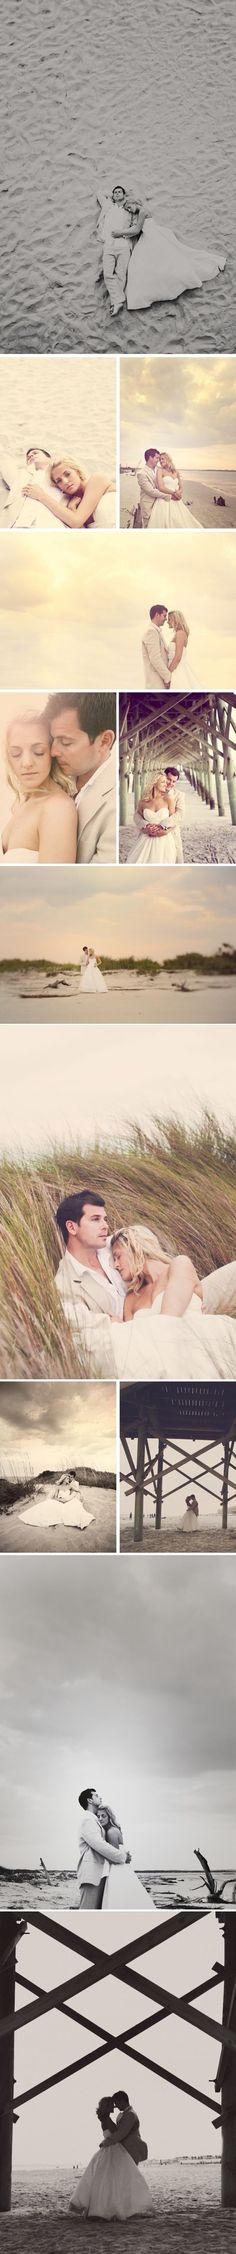 Beach wedding photos... not getting married at a beach, but I love these!